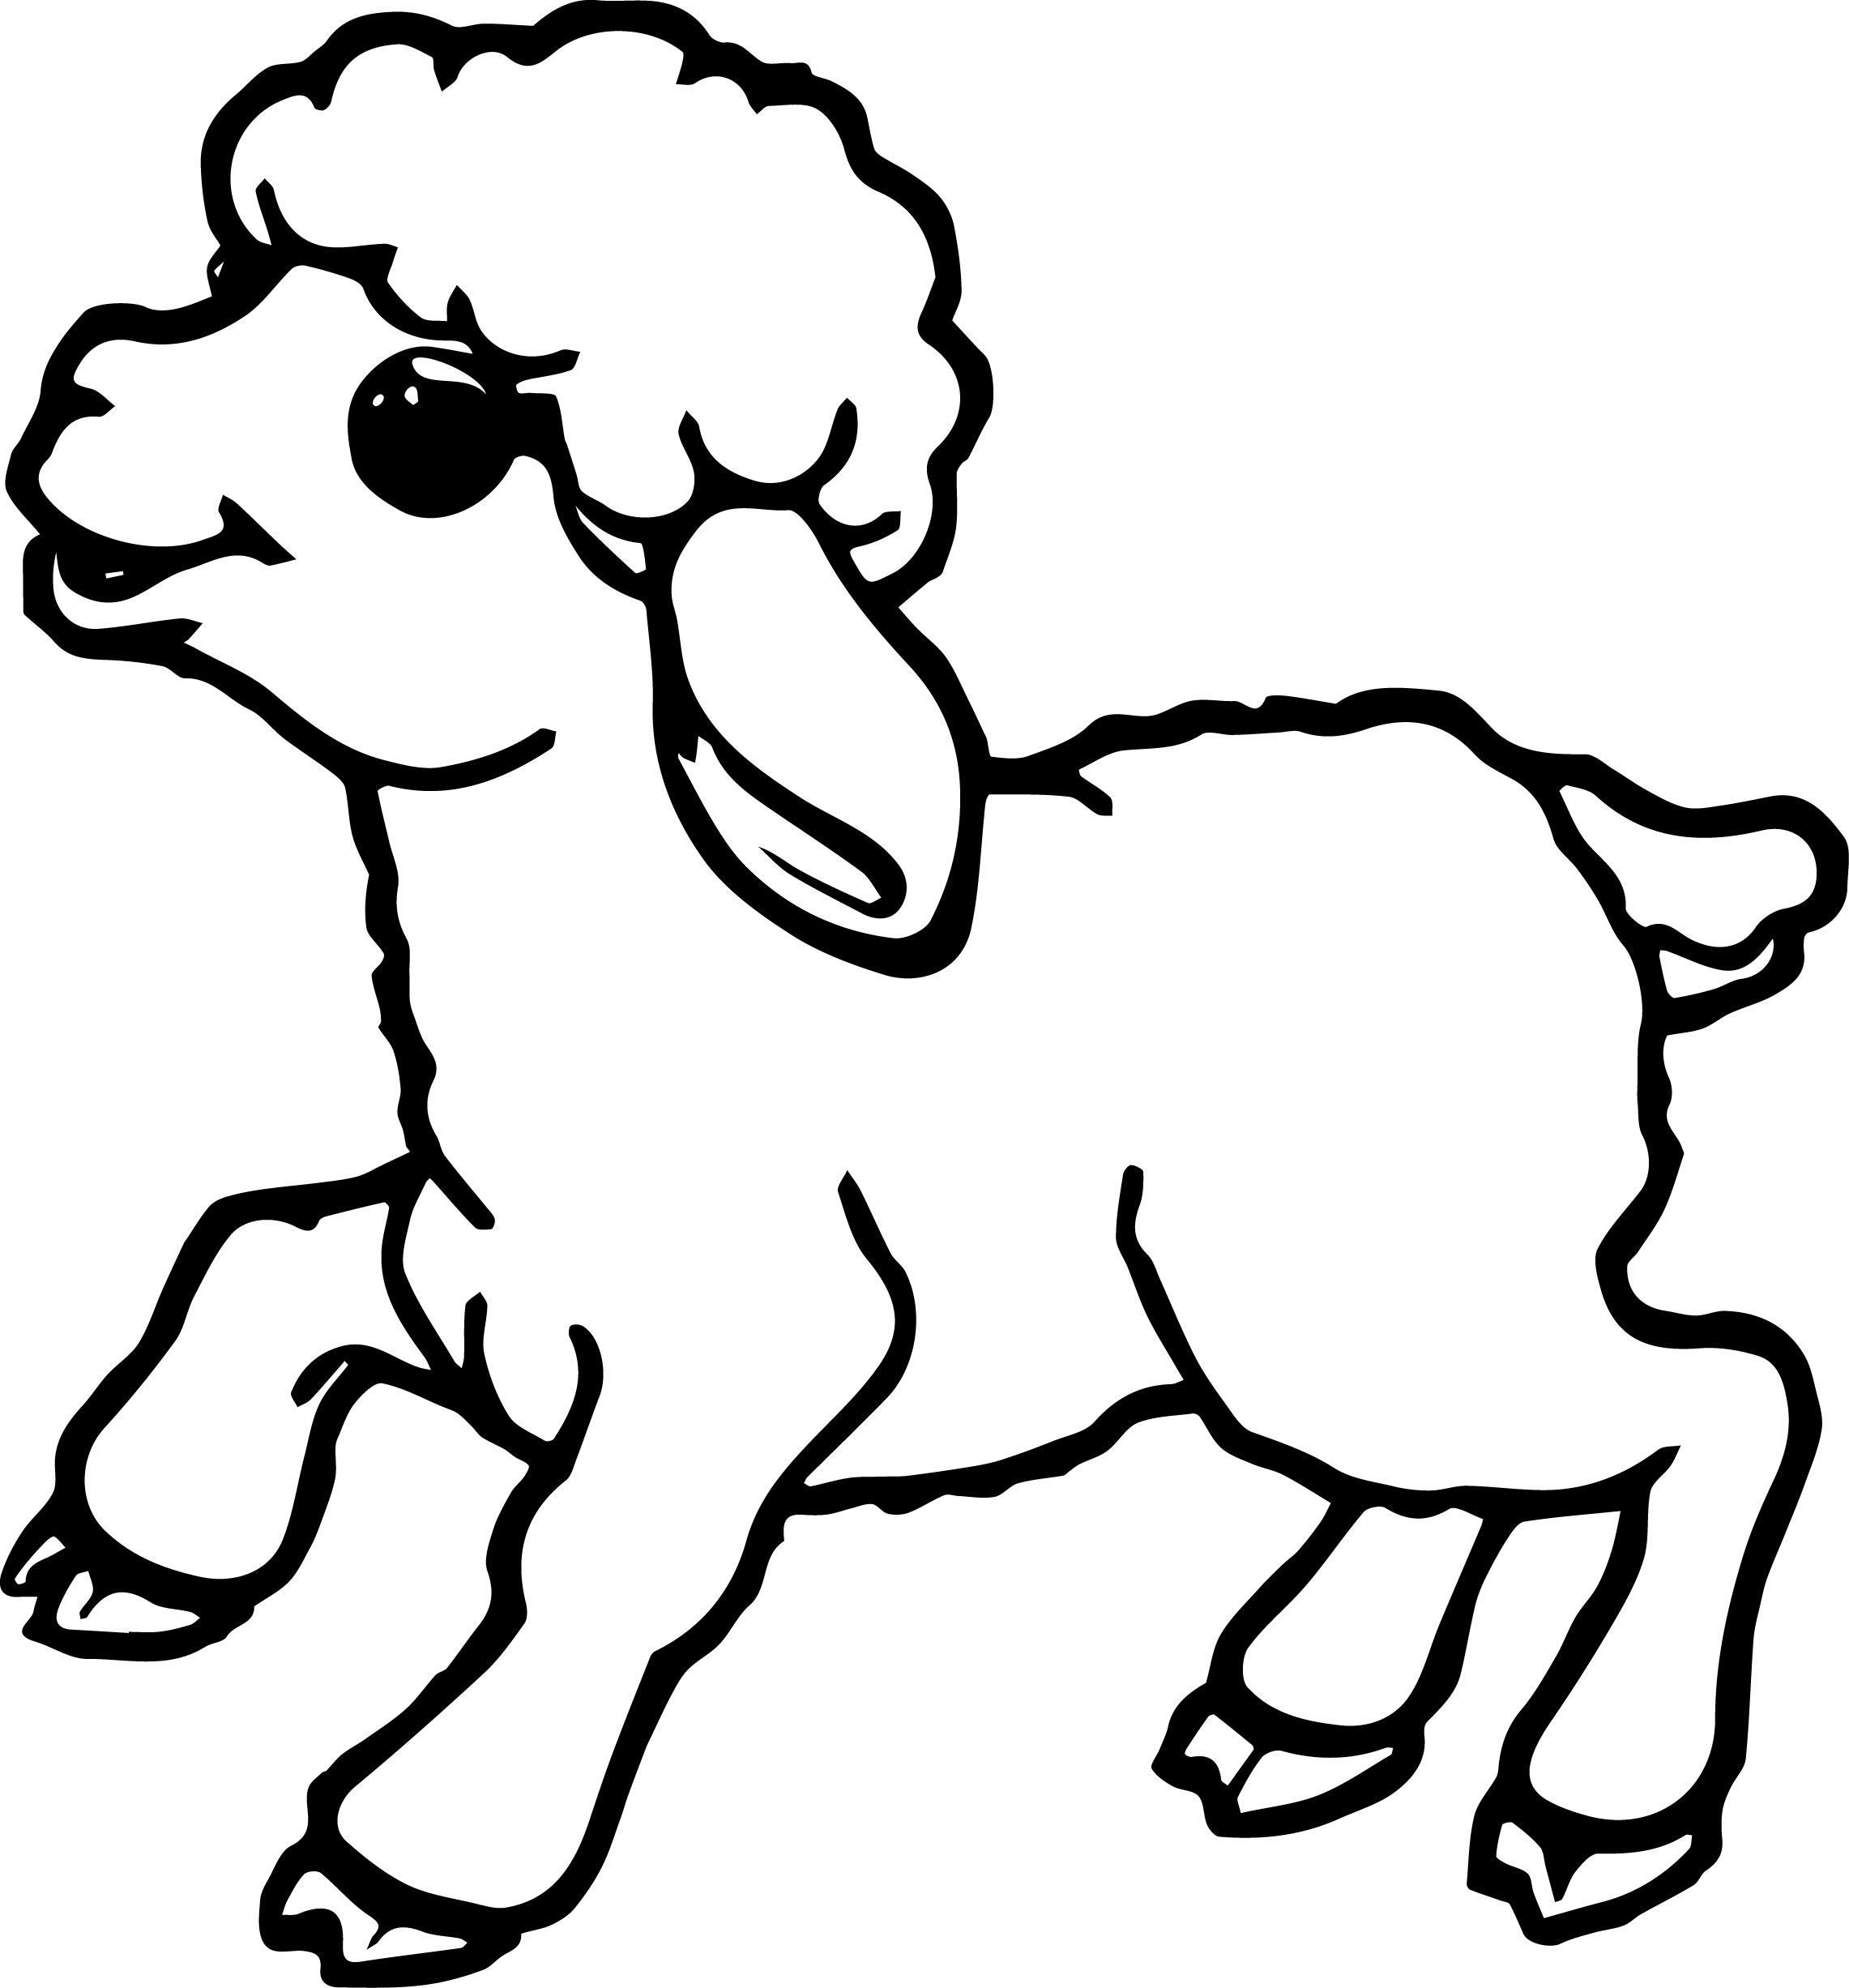 sheep colouring free printable sheep coloring pages for kids sheep colouring